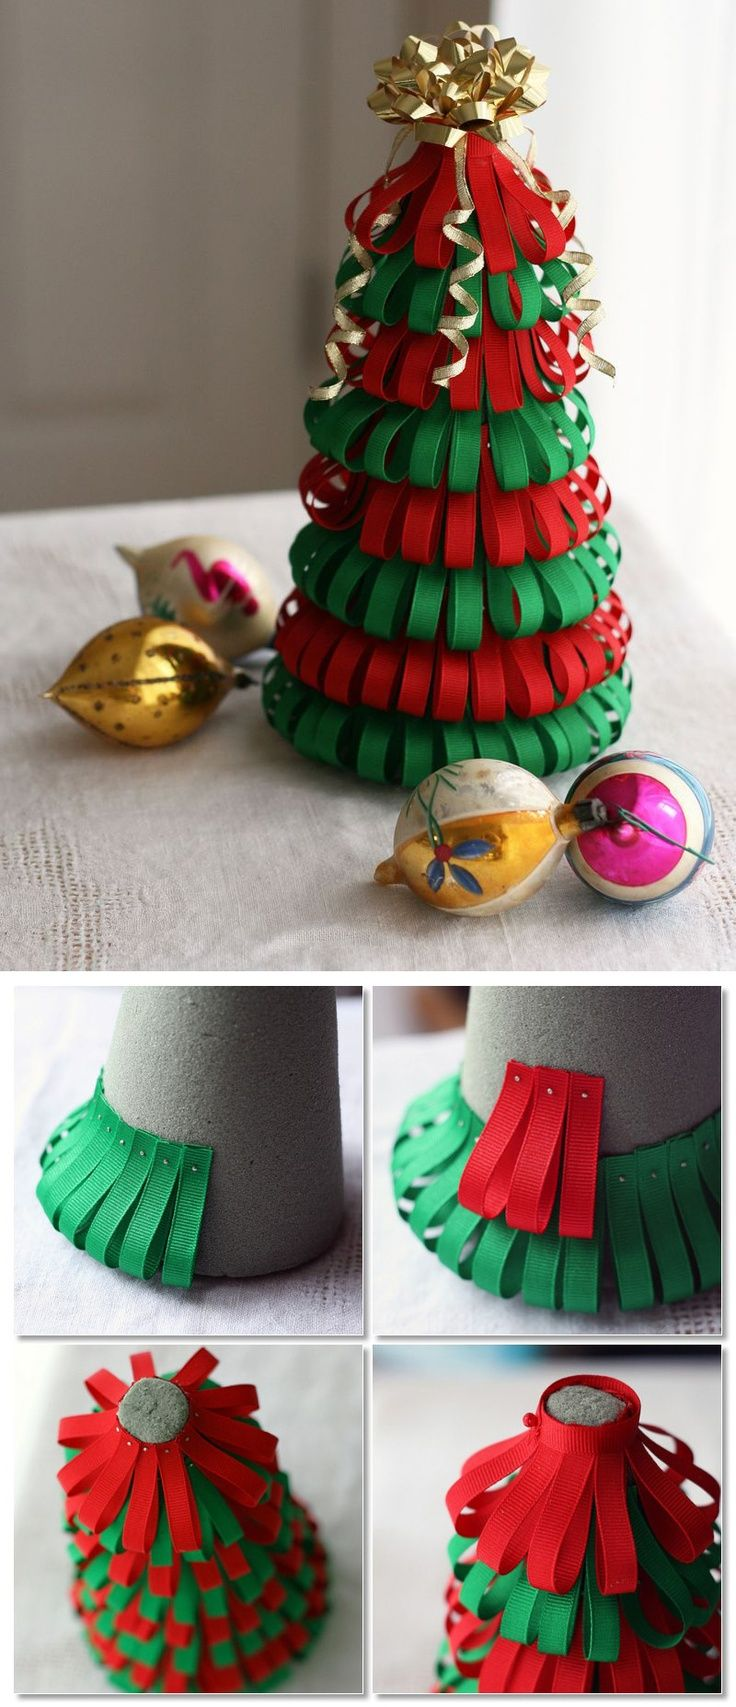 Diy christmas decorations - 31 Cute And Fun Diy Christmas Decorations